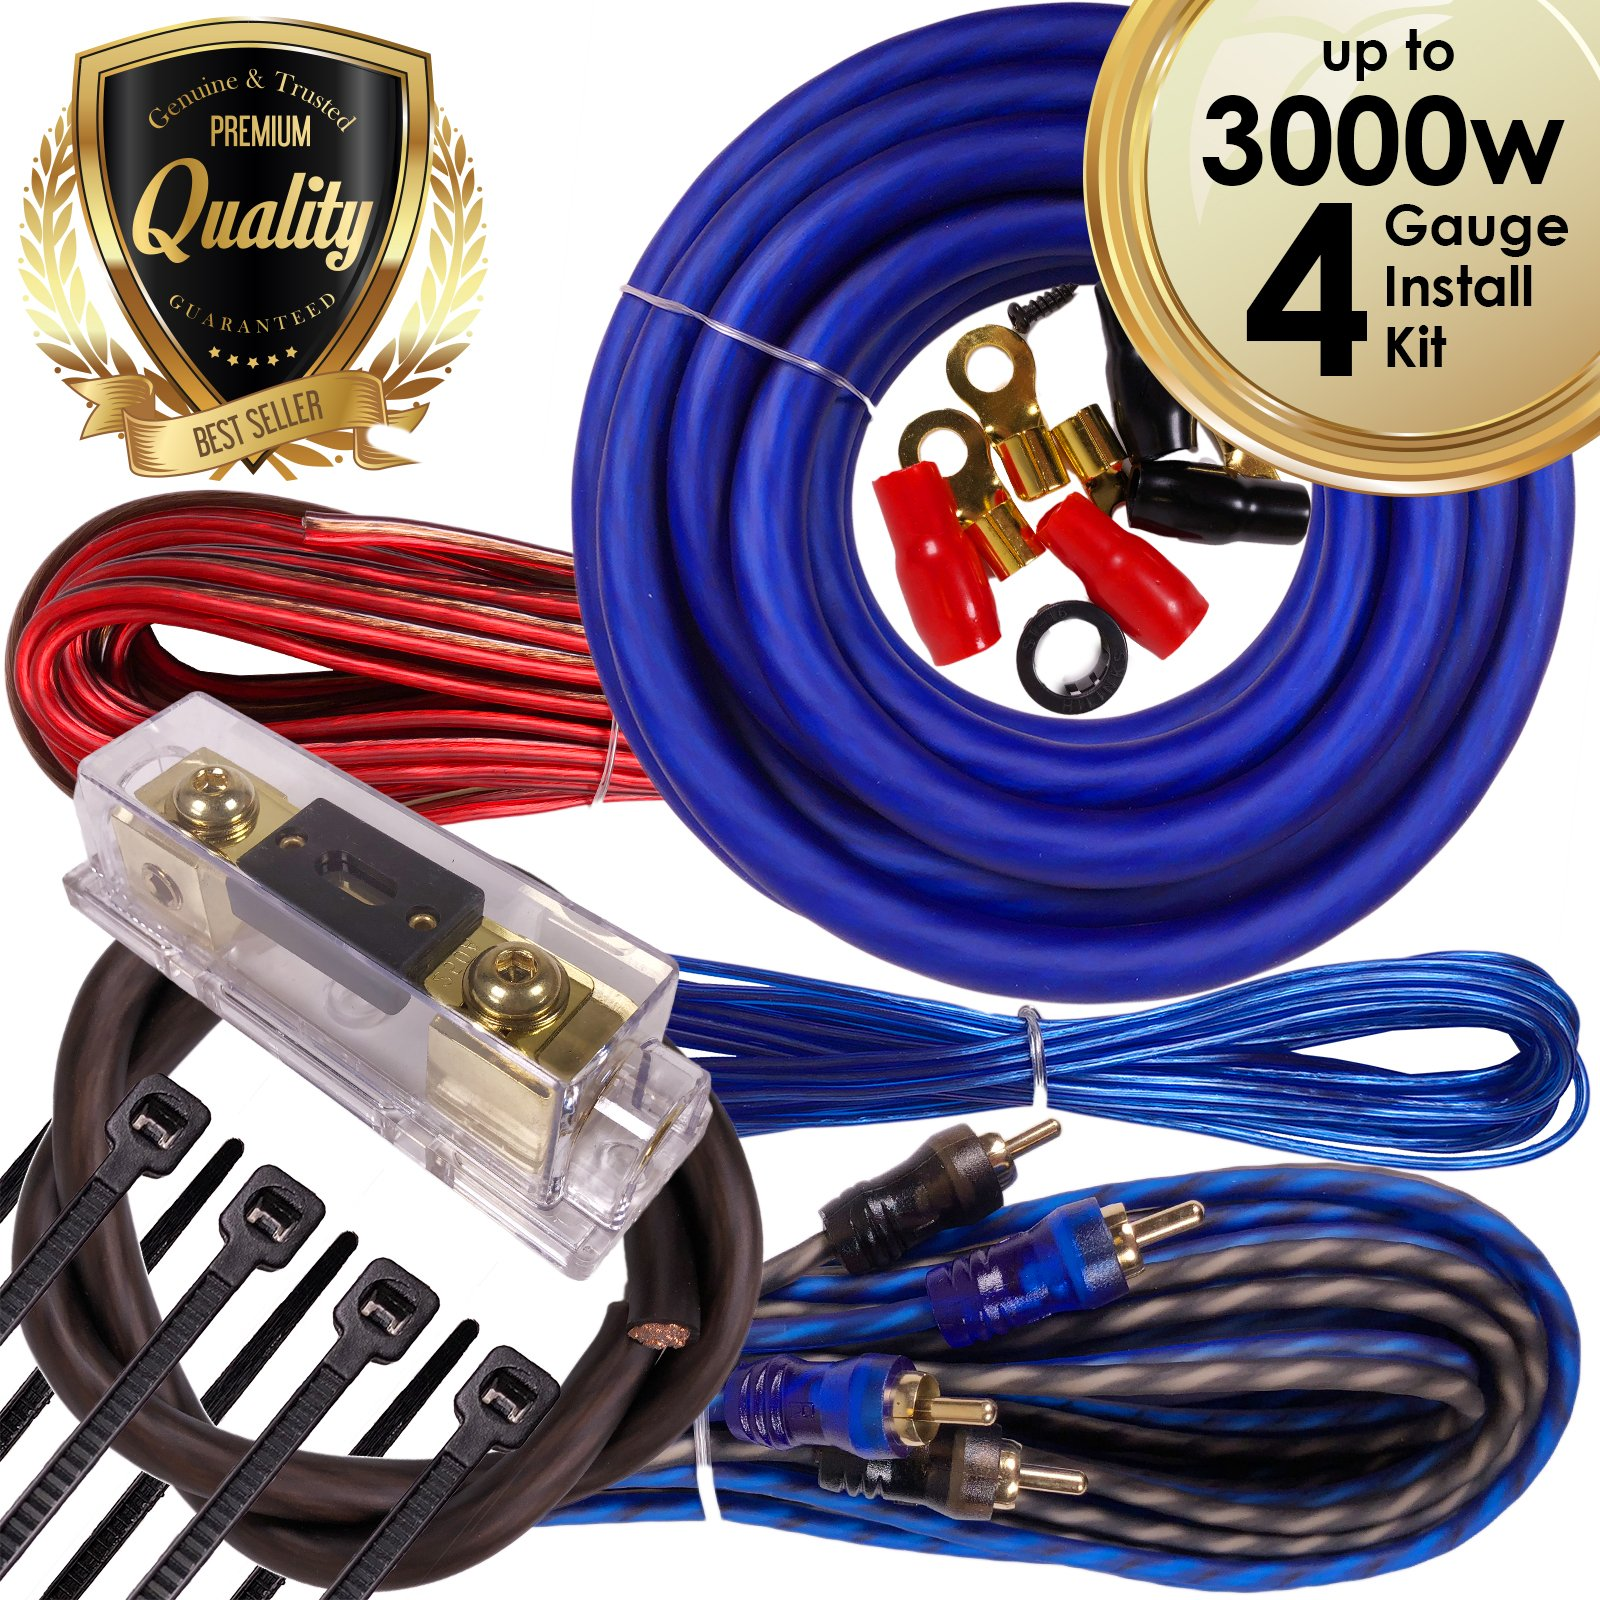 Complete 3000W Gravity 4 Gauge Amplifier Installation Wiring Kit Amp PK1 4 Ga Blue - For Installer and DIY Hobbyist - Perfect for Car / Truck / Motorcycle / RV / ATV